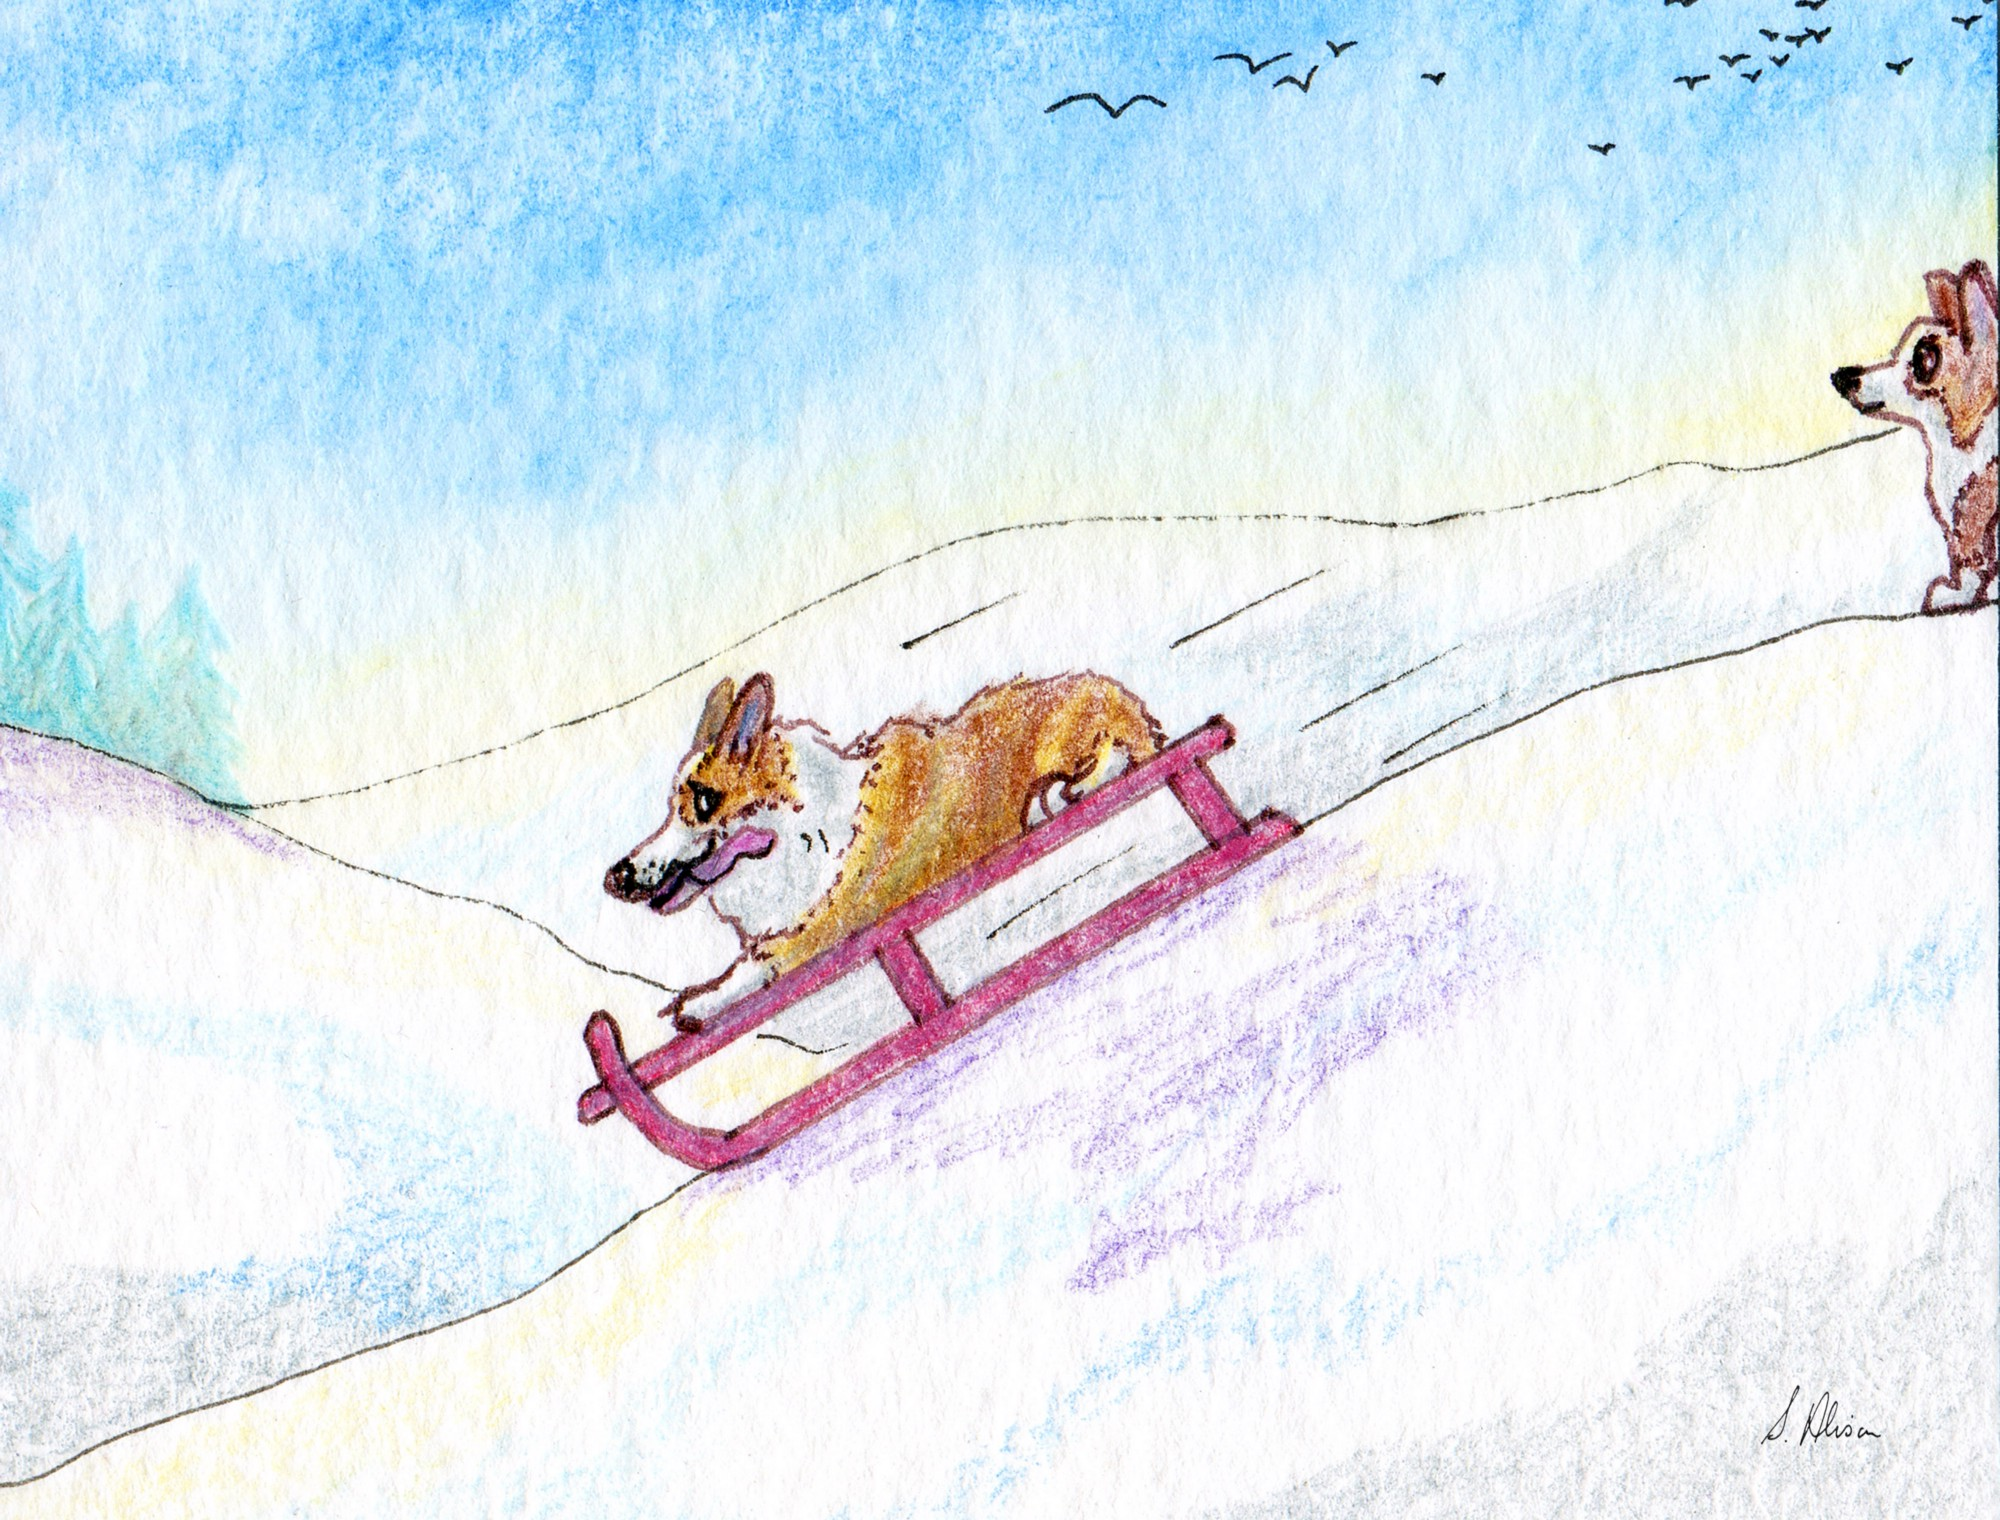 A dog is tobogganing down the slope with another dog watching.